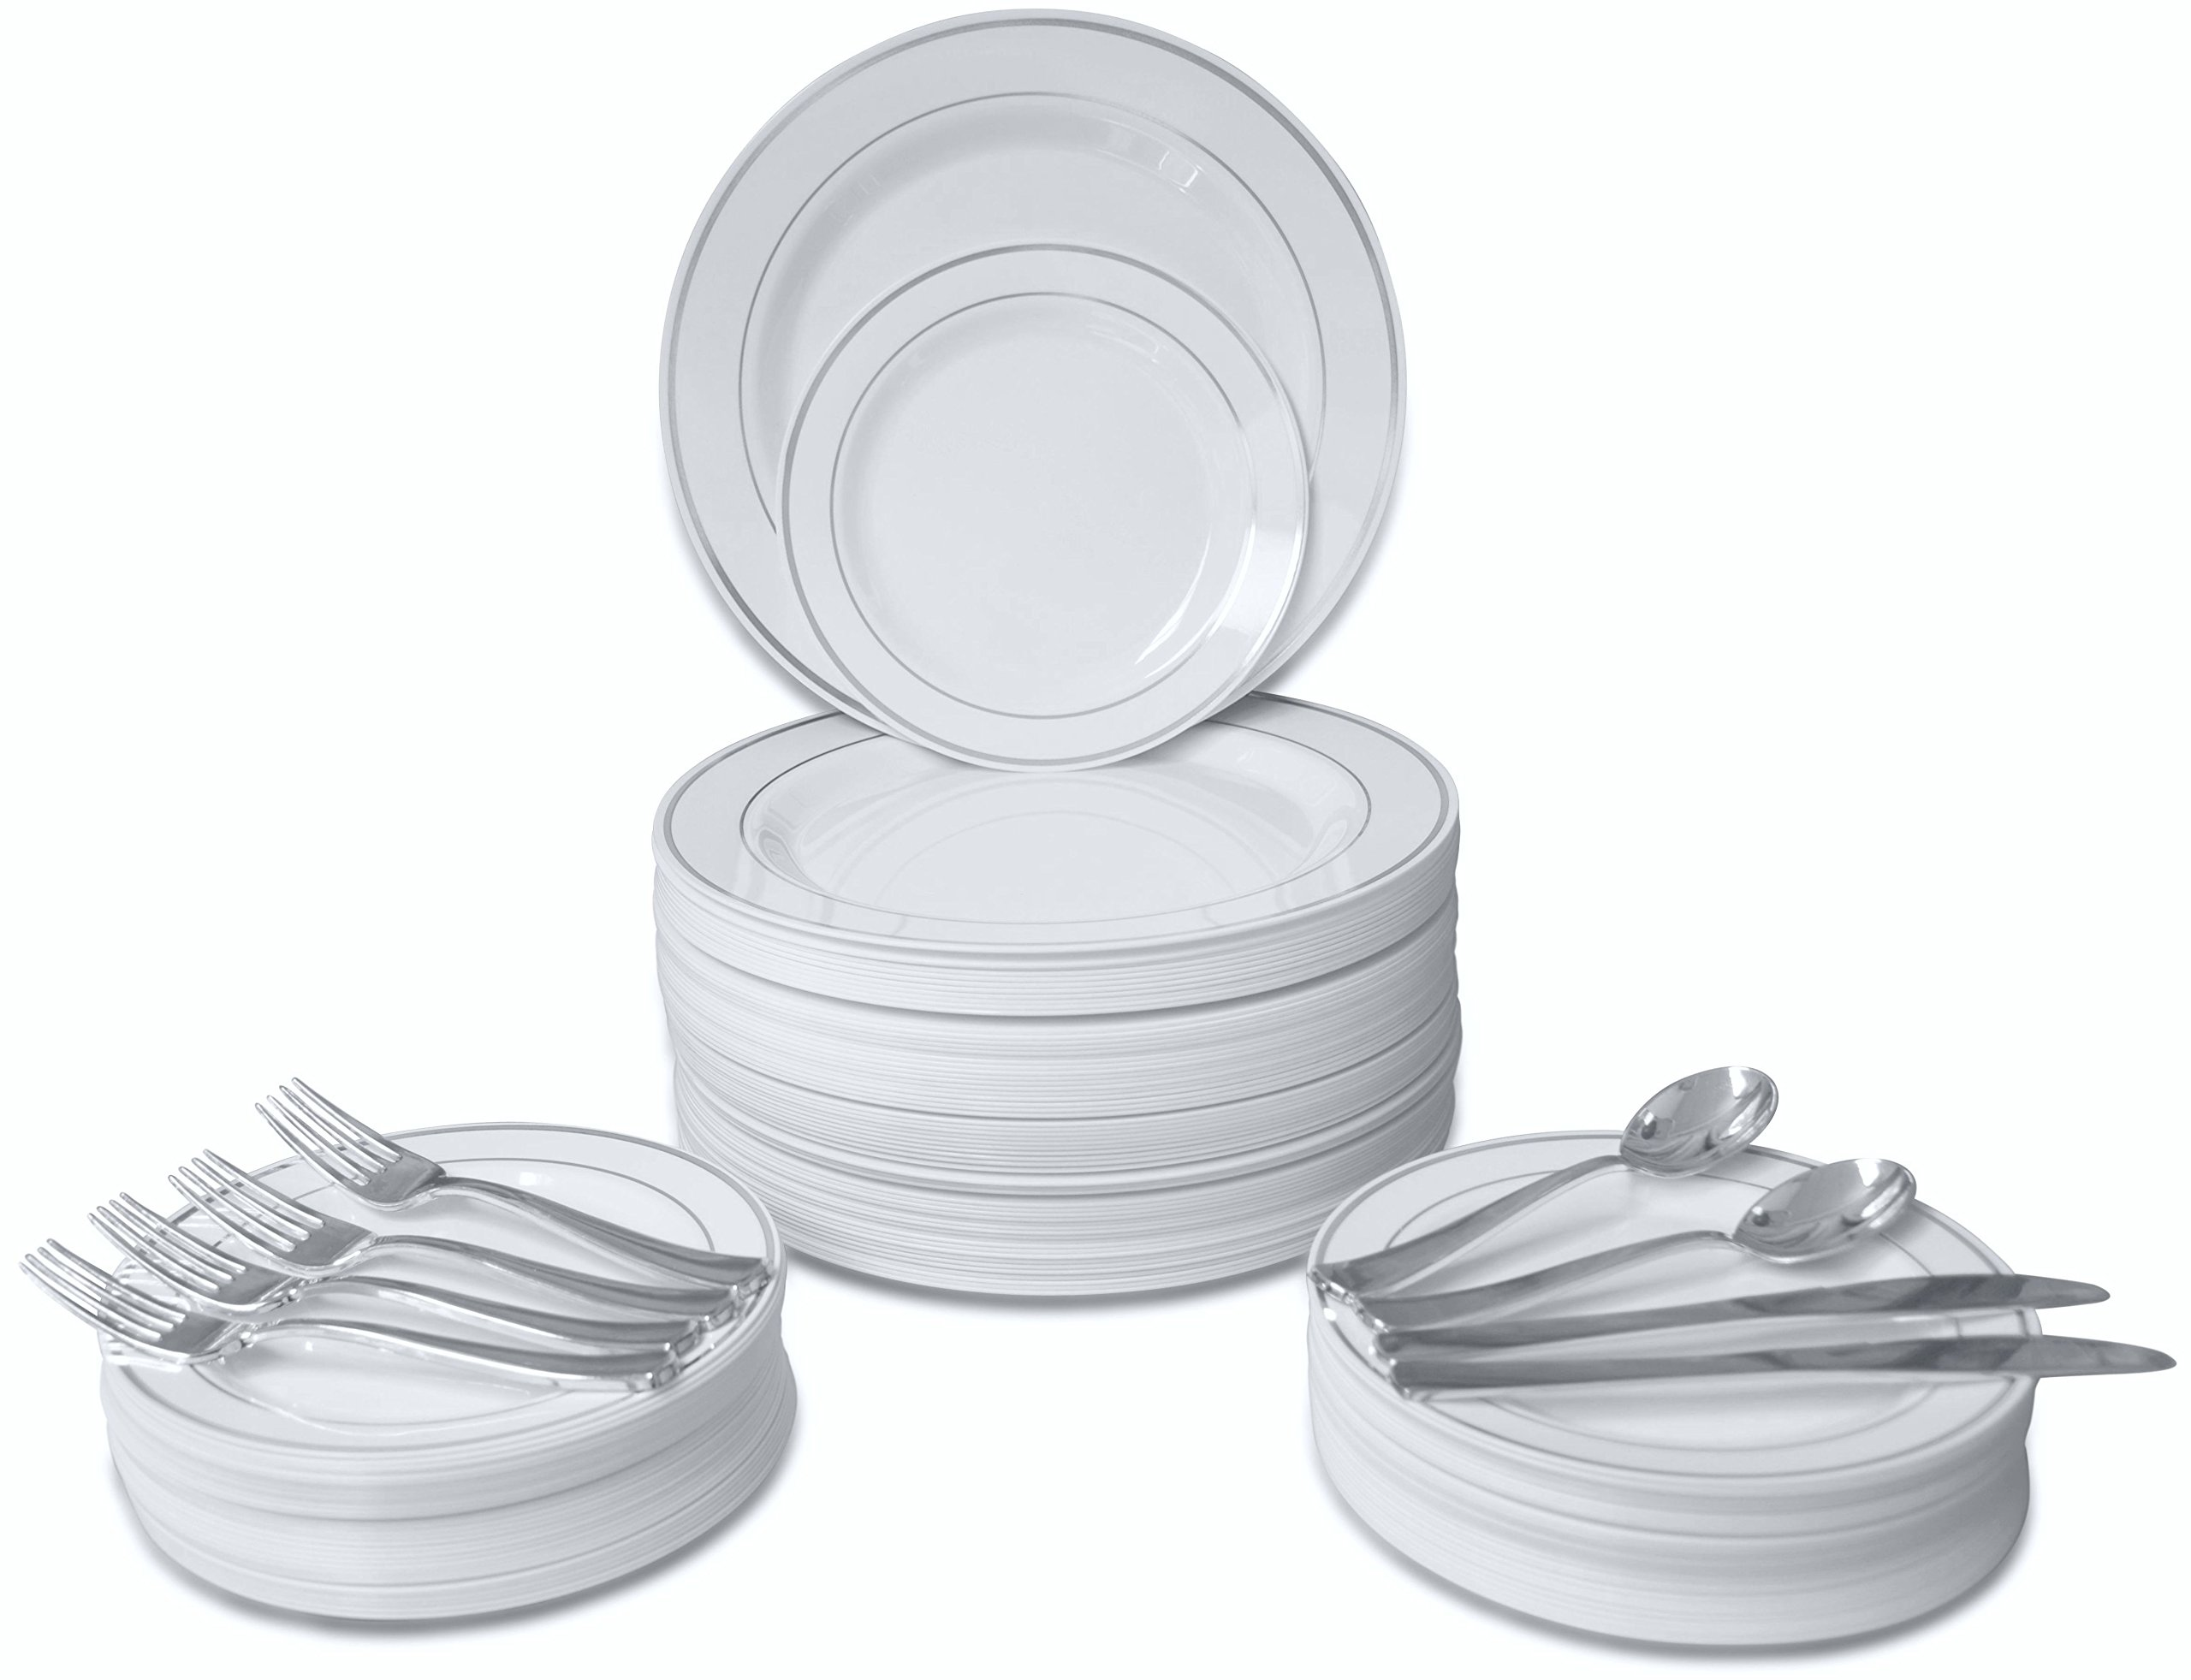 360 PIECE / 60 guest ''OCCASIONS'' Wedding Disposable Plastic Plate and Silverware Combo (White/Silver rim plates) by OCCASIONS FINEST PLASTIC TABLEWARE